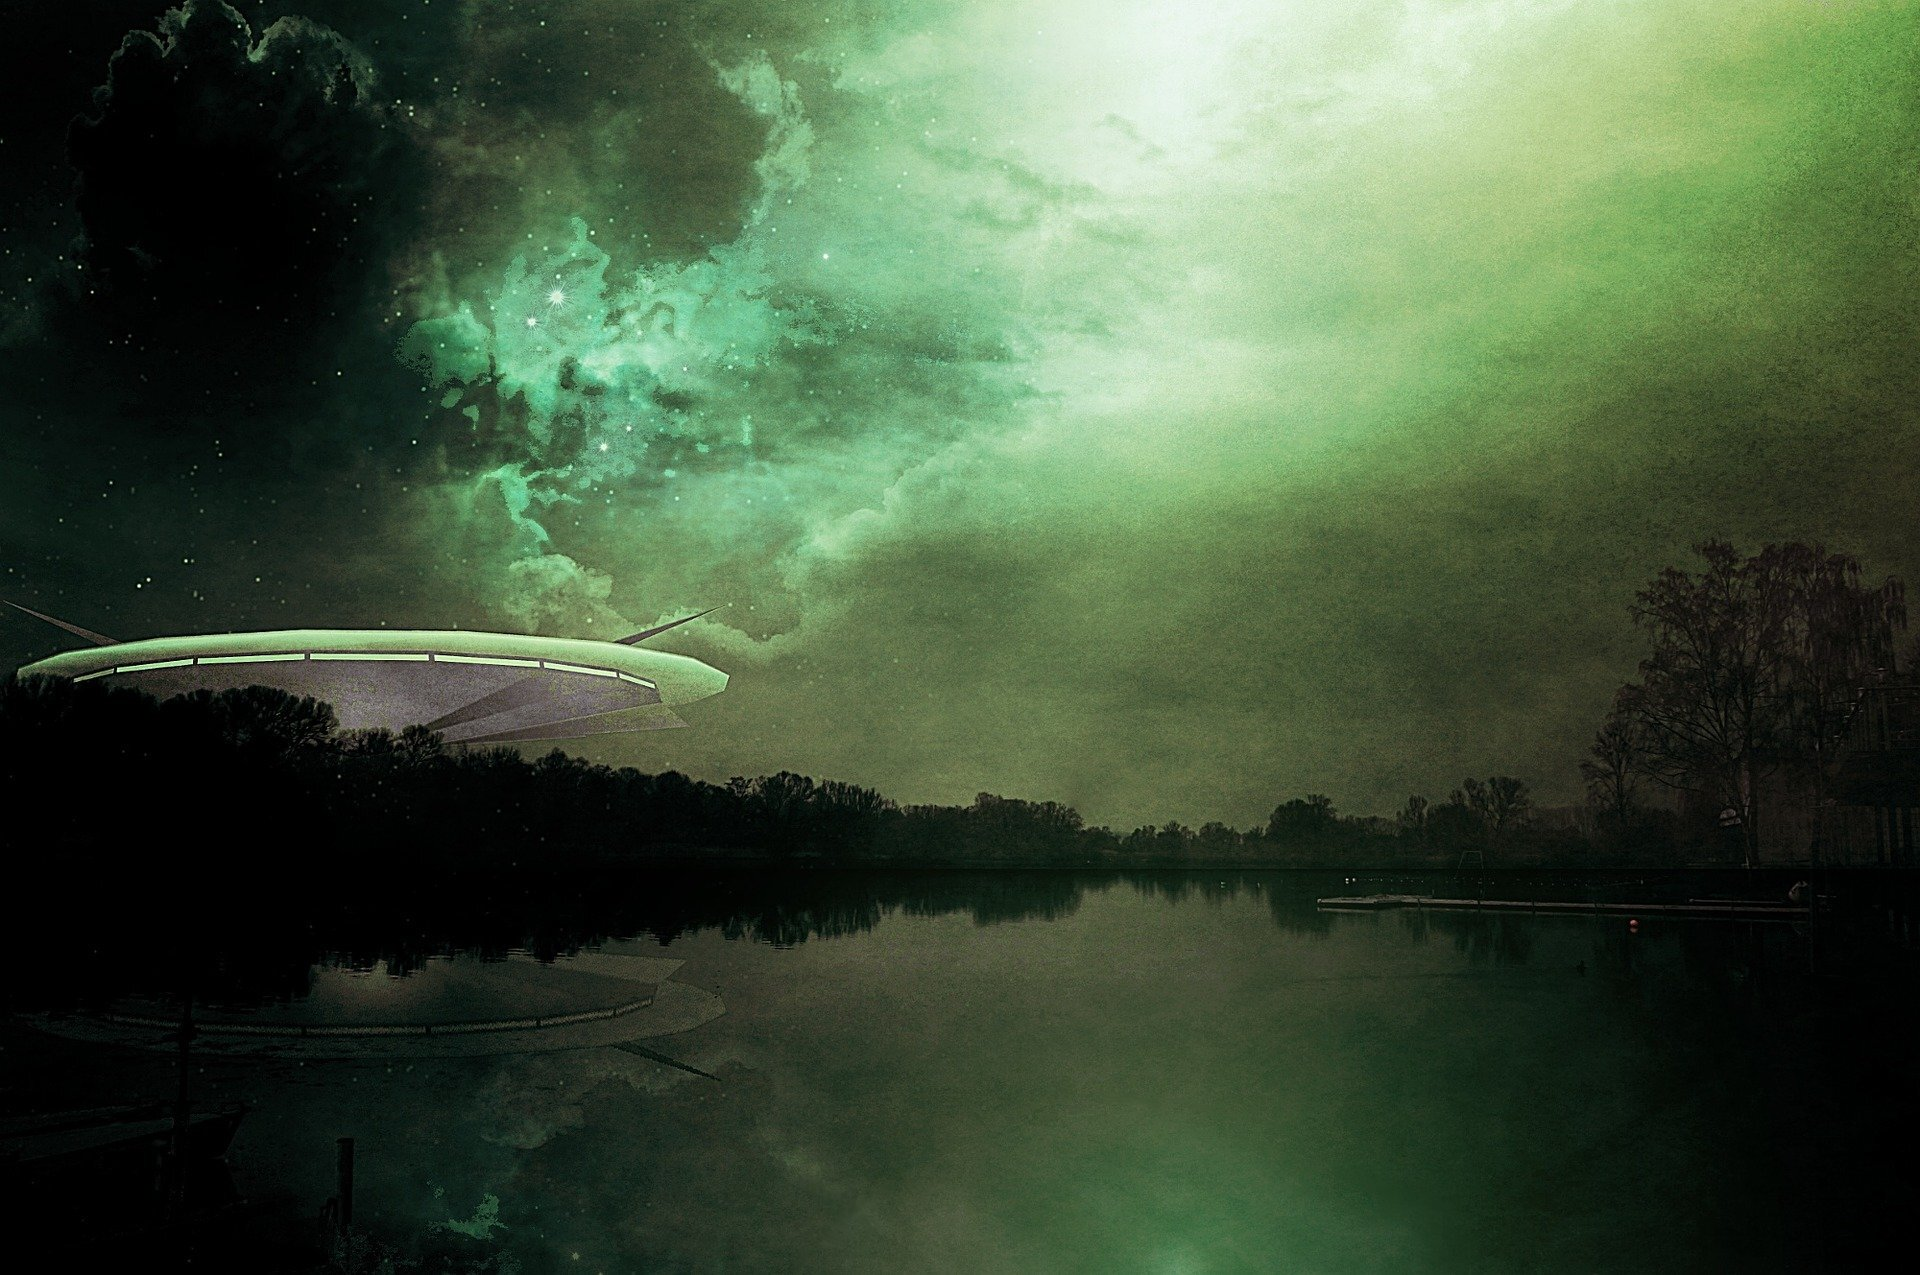 Science historian discusses U.S. government report on UFOs